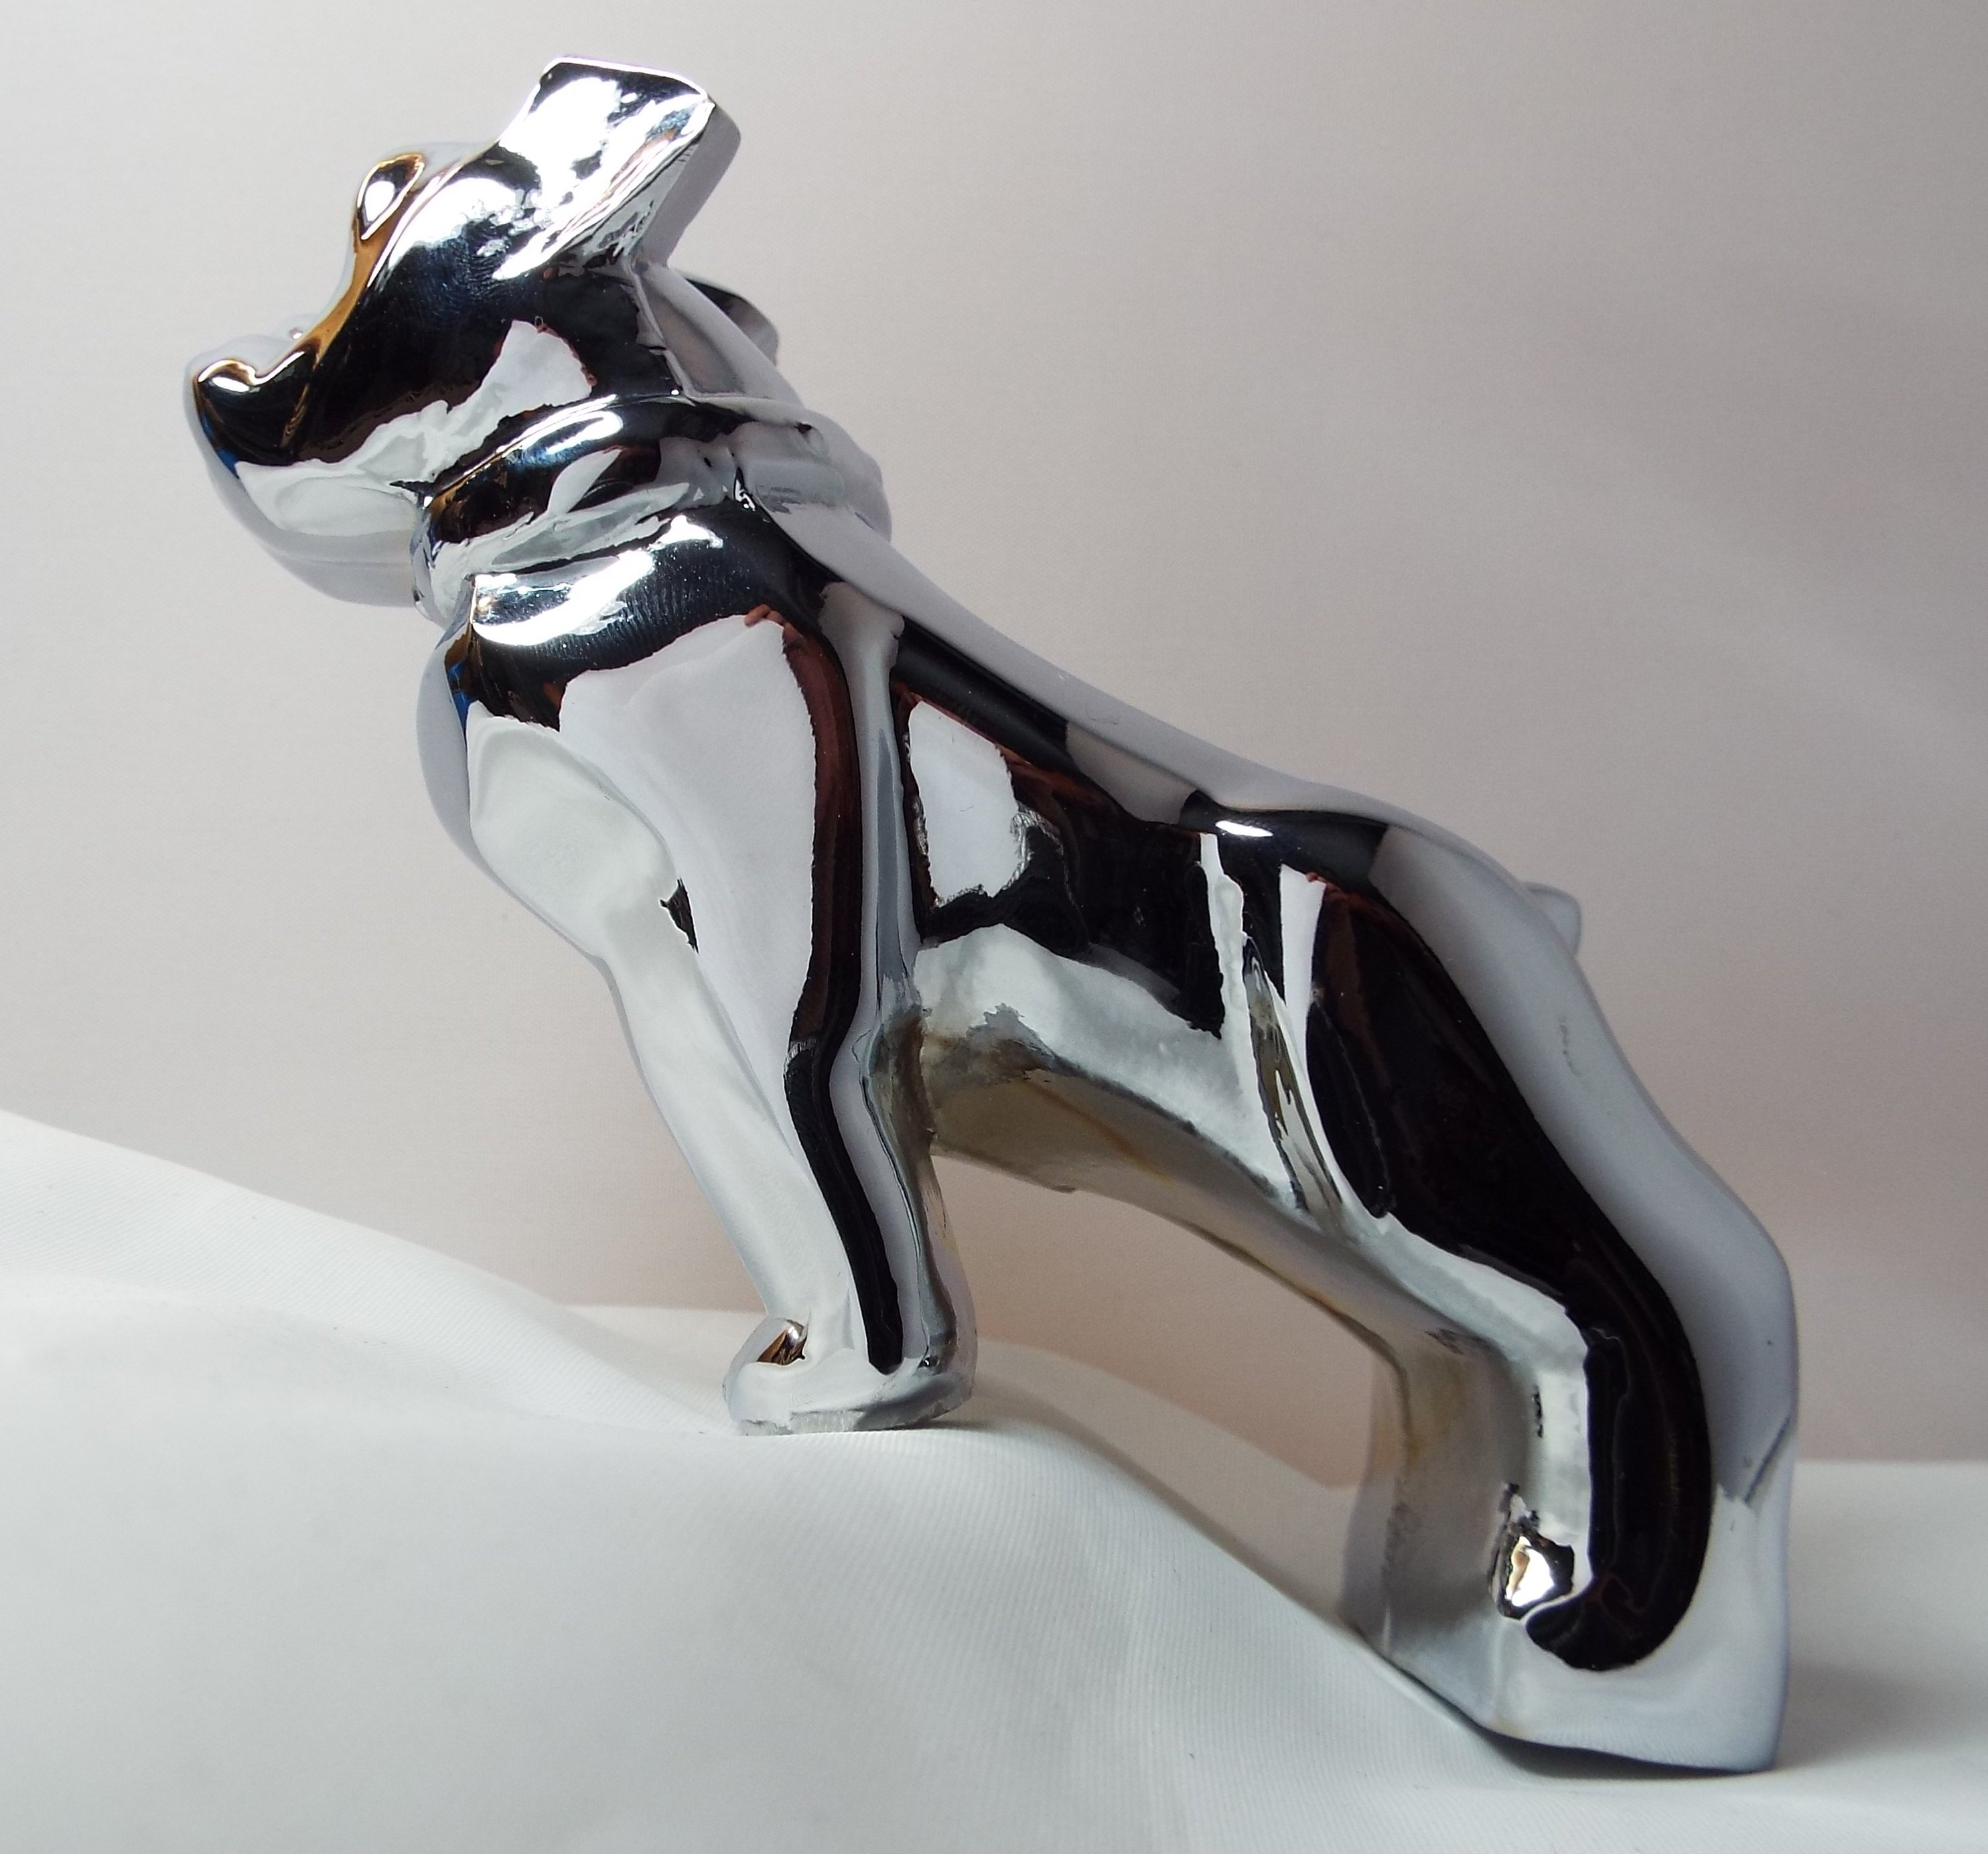 Large Bulldog Bonnet Mascot -Chrome Plated